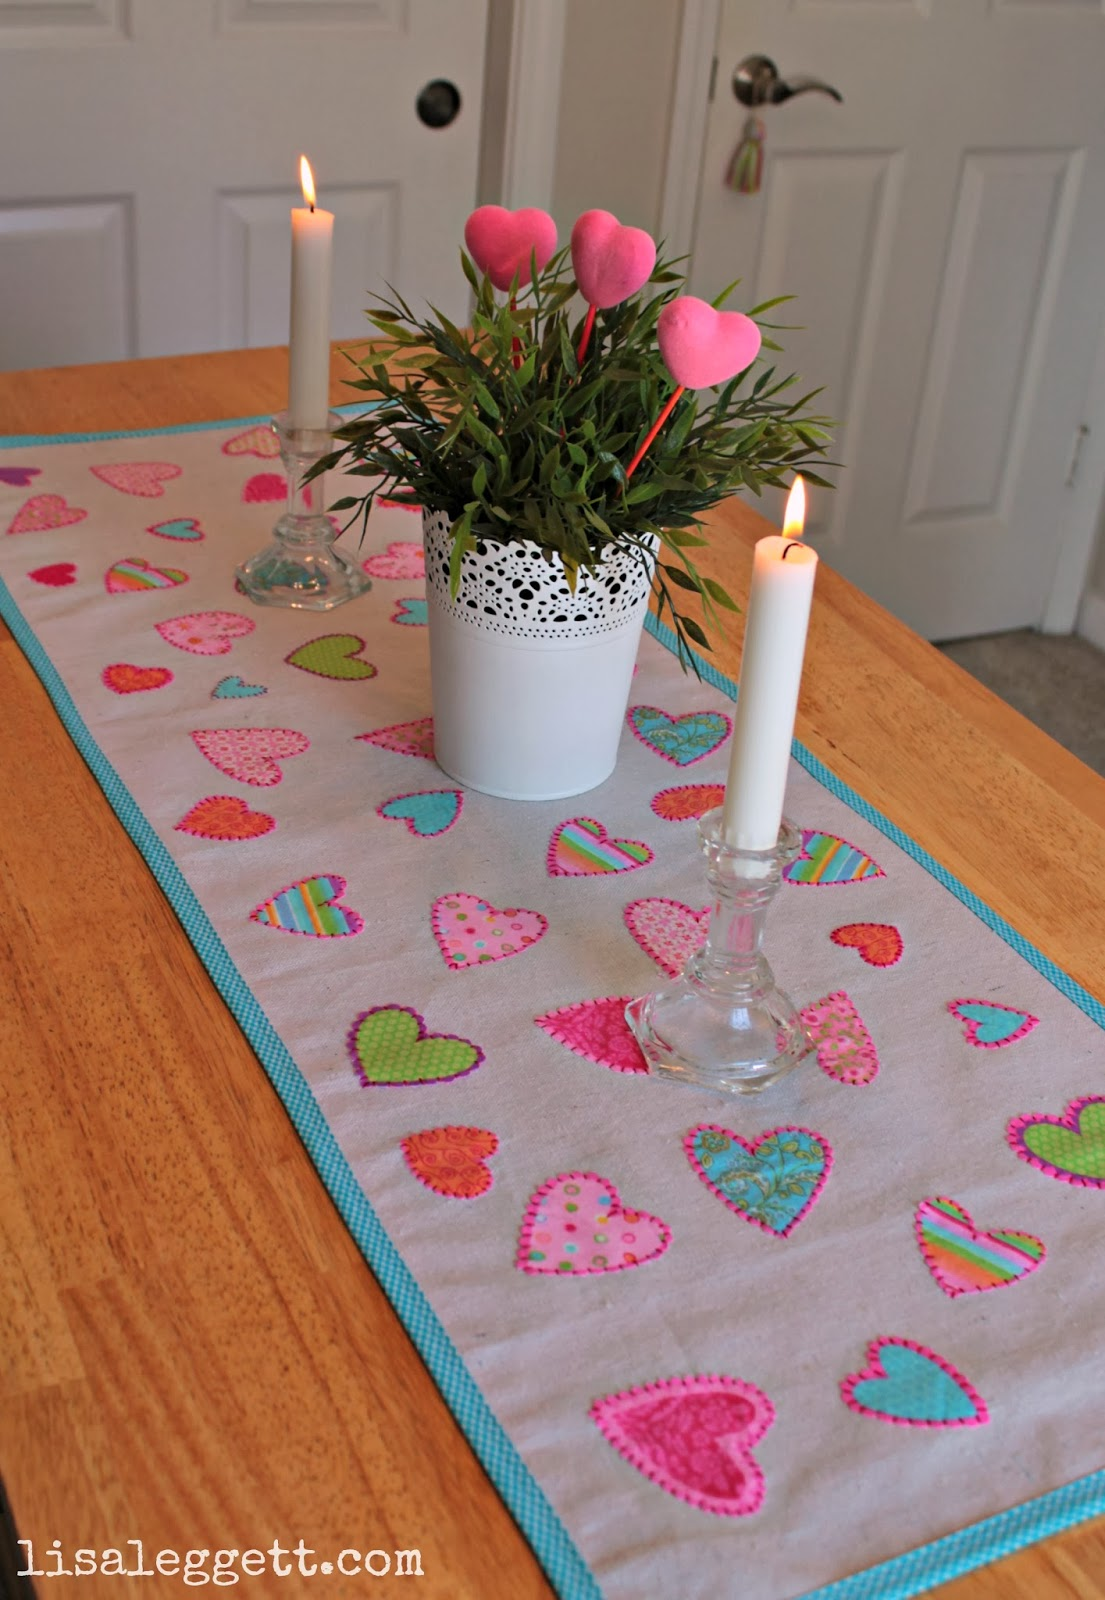 Appliqued Heart Table Runner